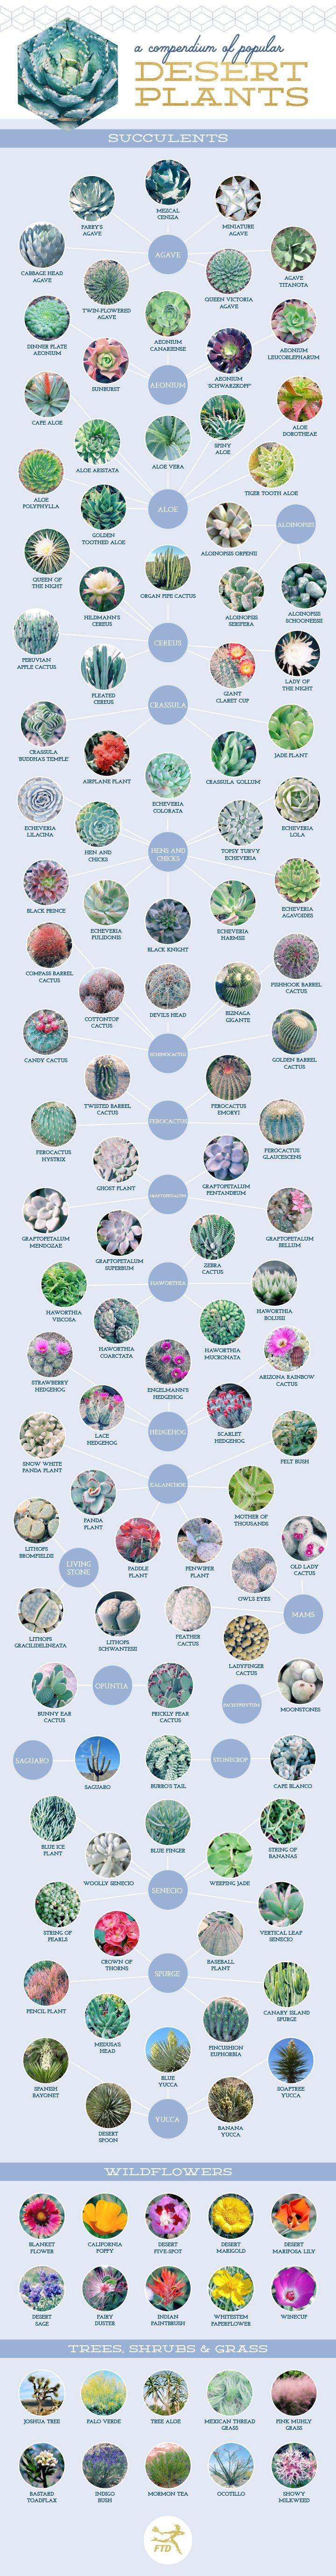 Don't know the name of your succulent or cactus plant? This great Compendium of 127 Stunning Desert Plants and Succulents may help. Image shared with permission of ftd.com . For help on propagating succulents please visit http://thegardeningcook.com